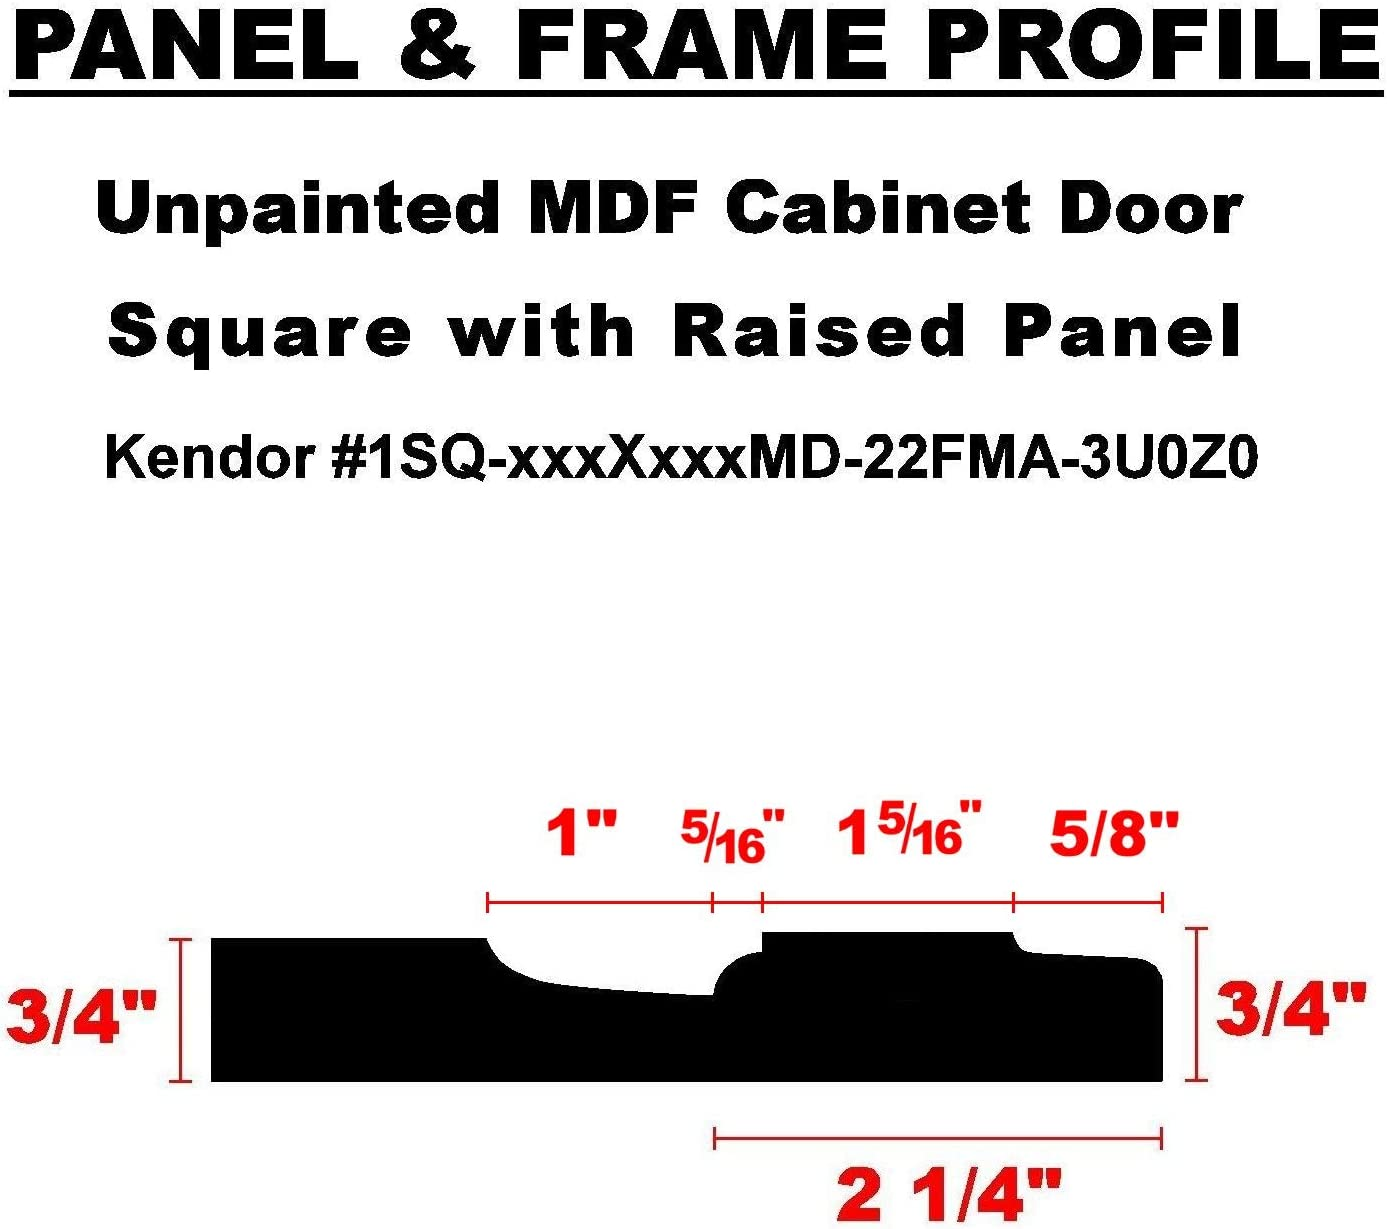 Kendor Unfinished MDF Cabinet Door 28H x 16W Square with Raised Panel